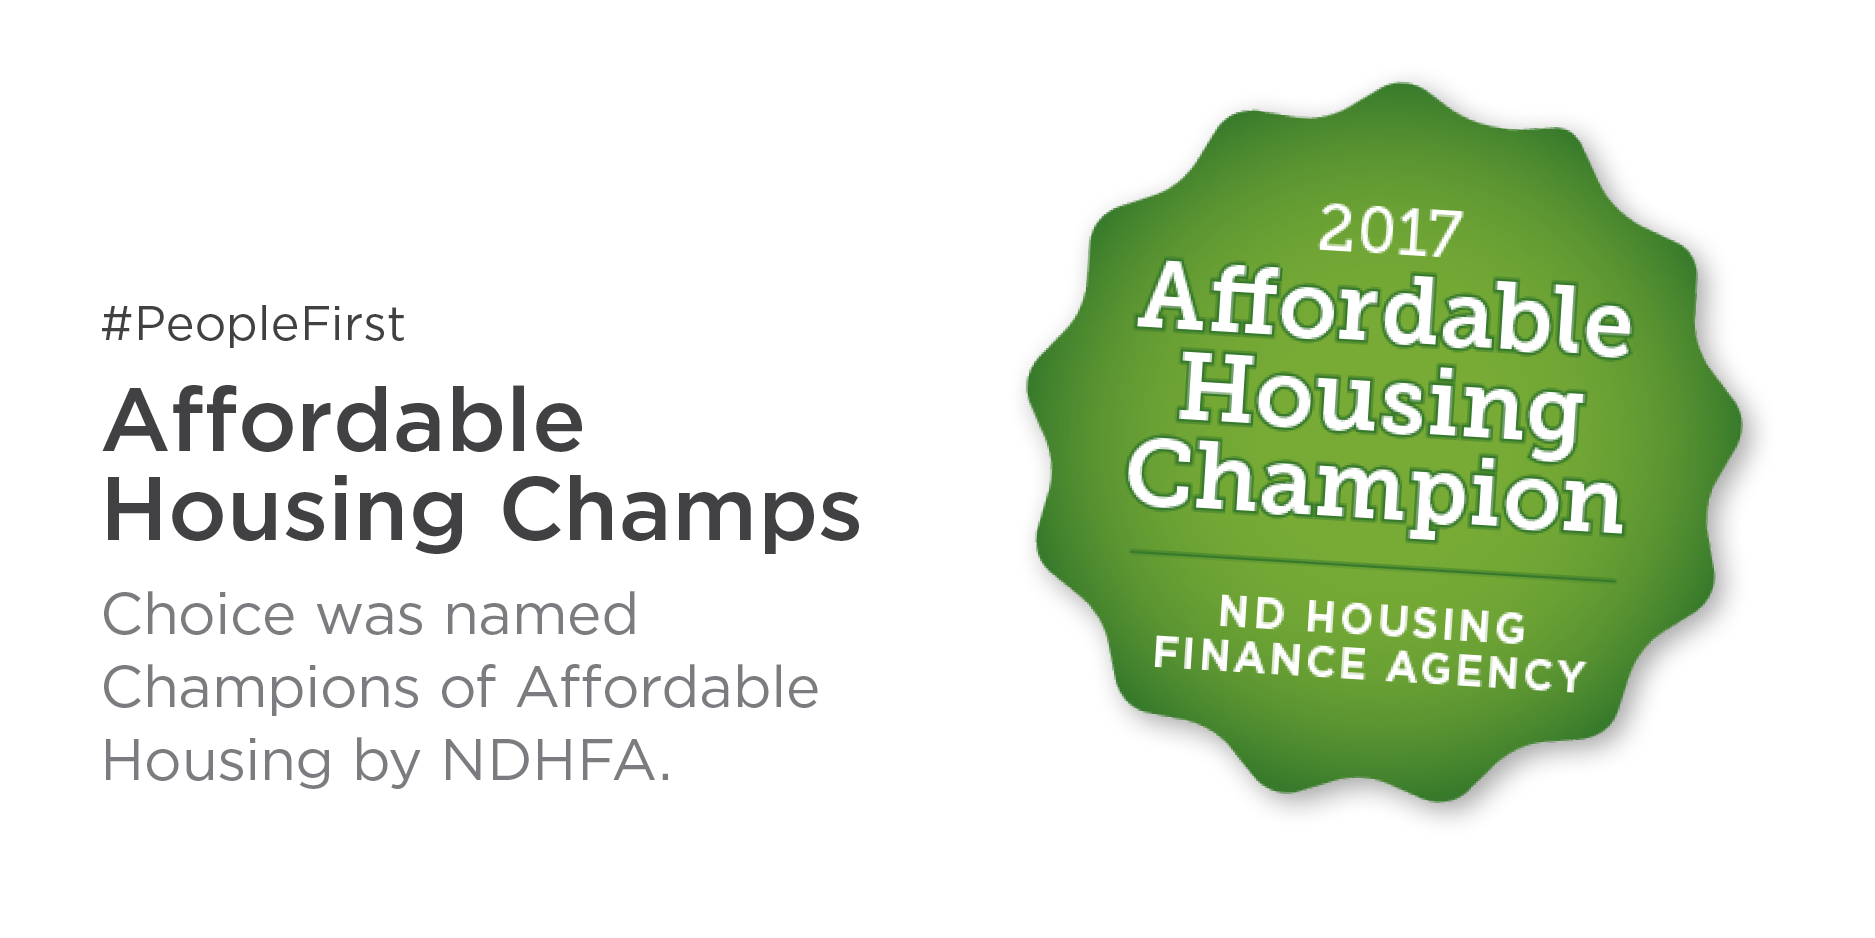 Choice Financial Named Affordable Housing Champs by NDHFA